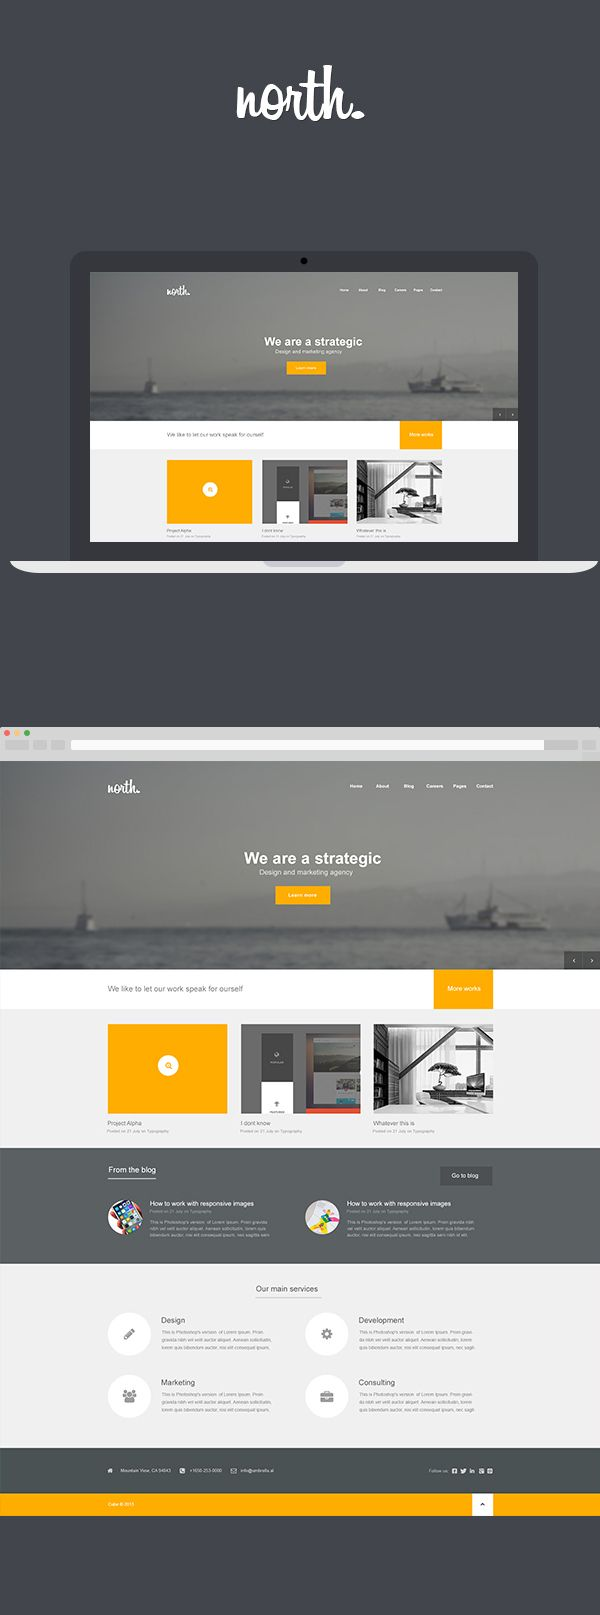 North by Arian Selimaj, via Behance - Flat Web Design Inspiration